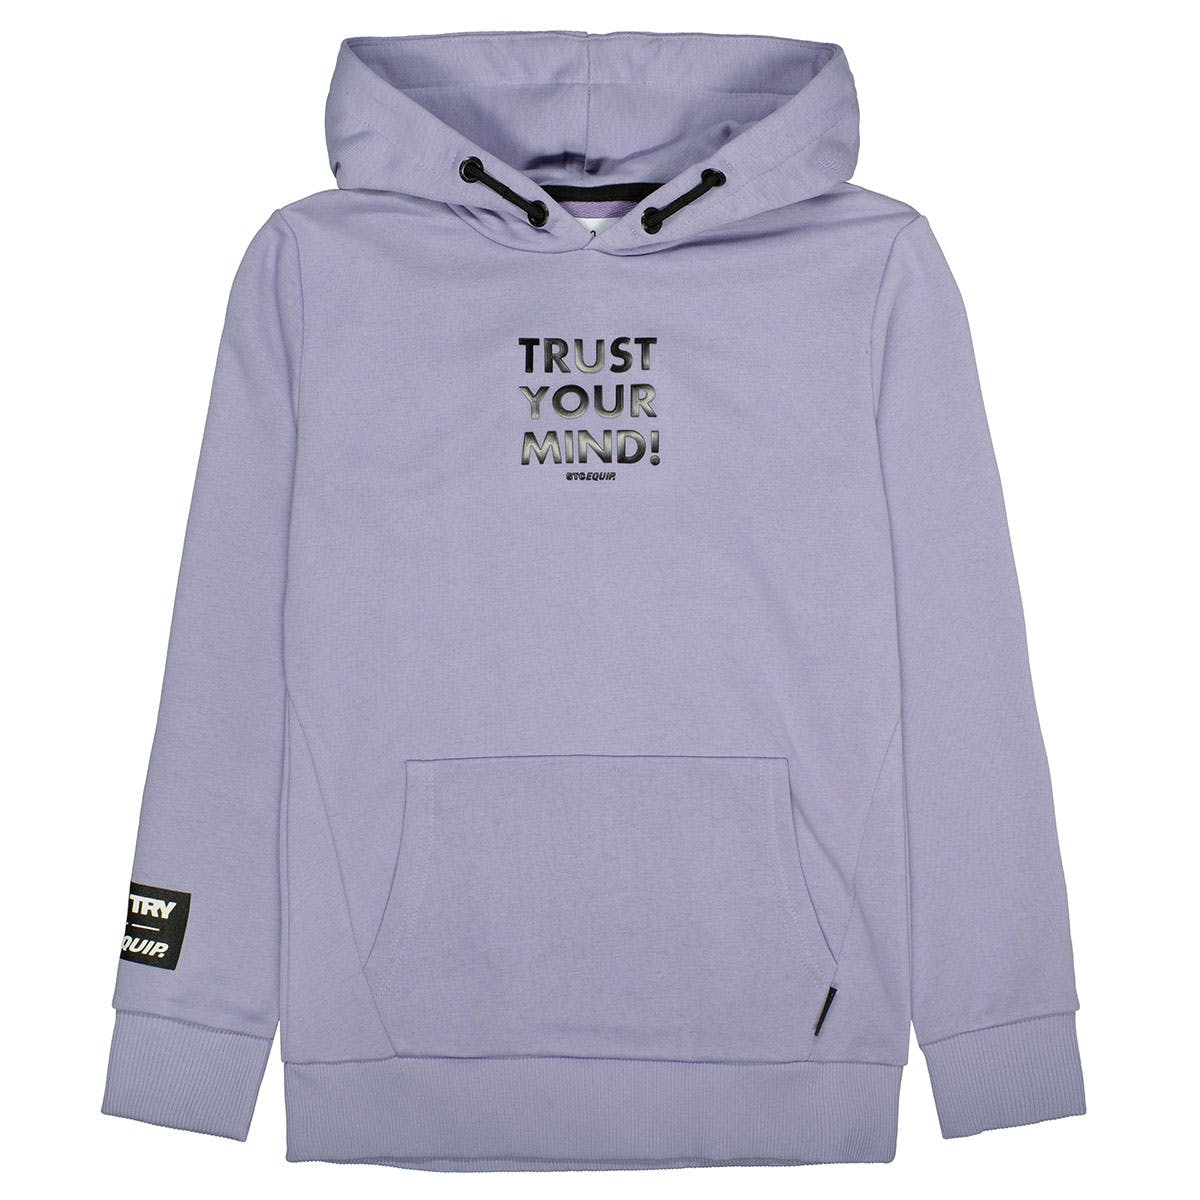 Hoodie TRUST YOUR MIND - Lilac